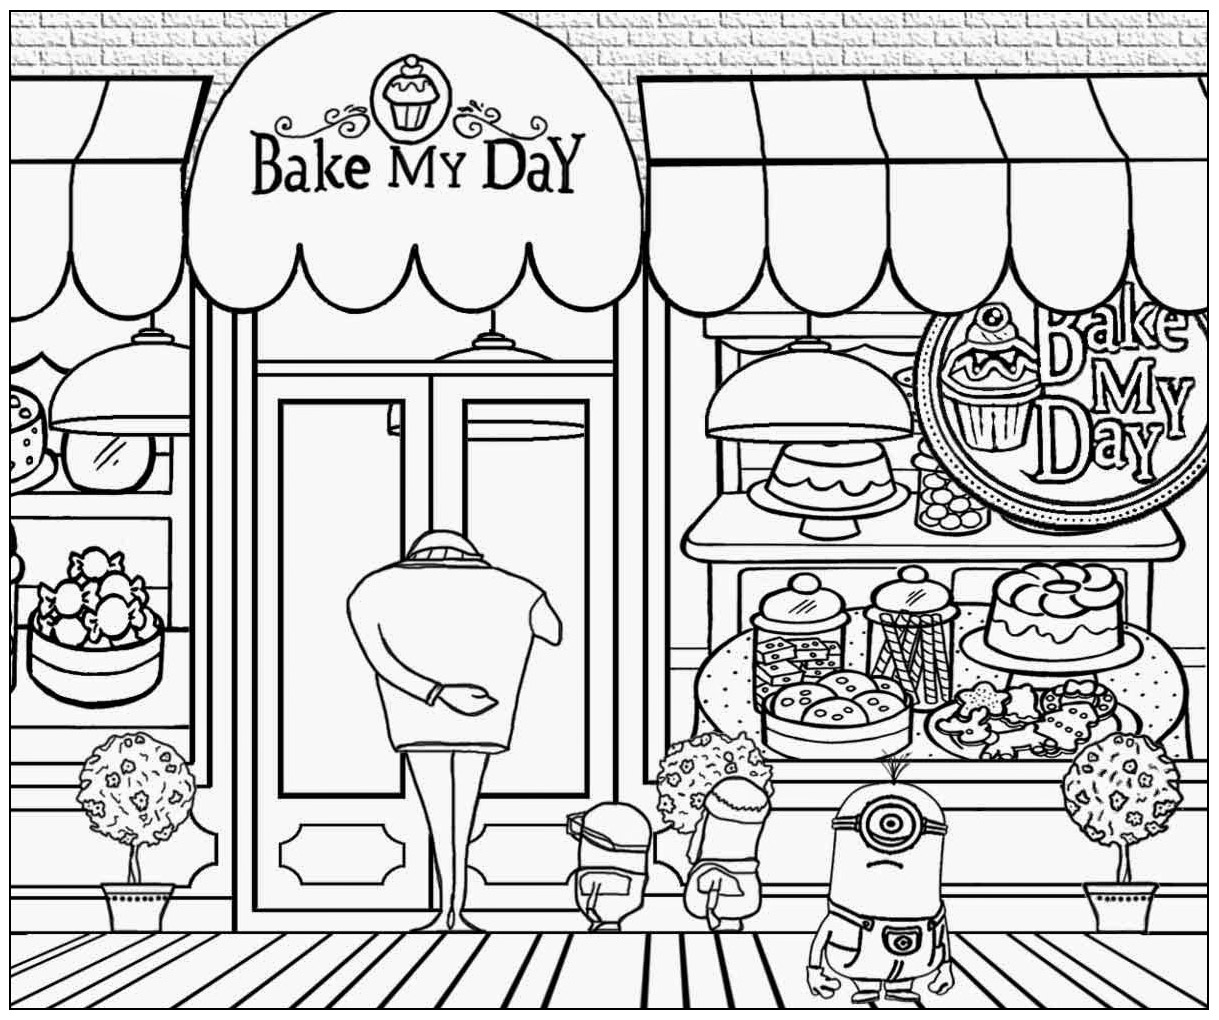 shops coloring pages - photo#10